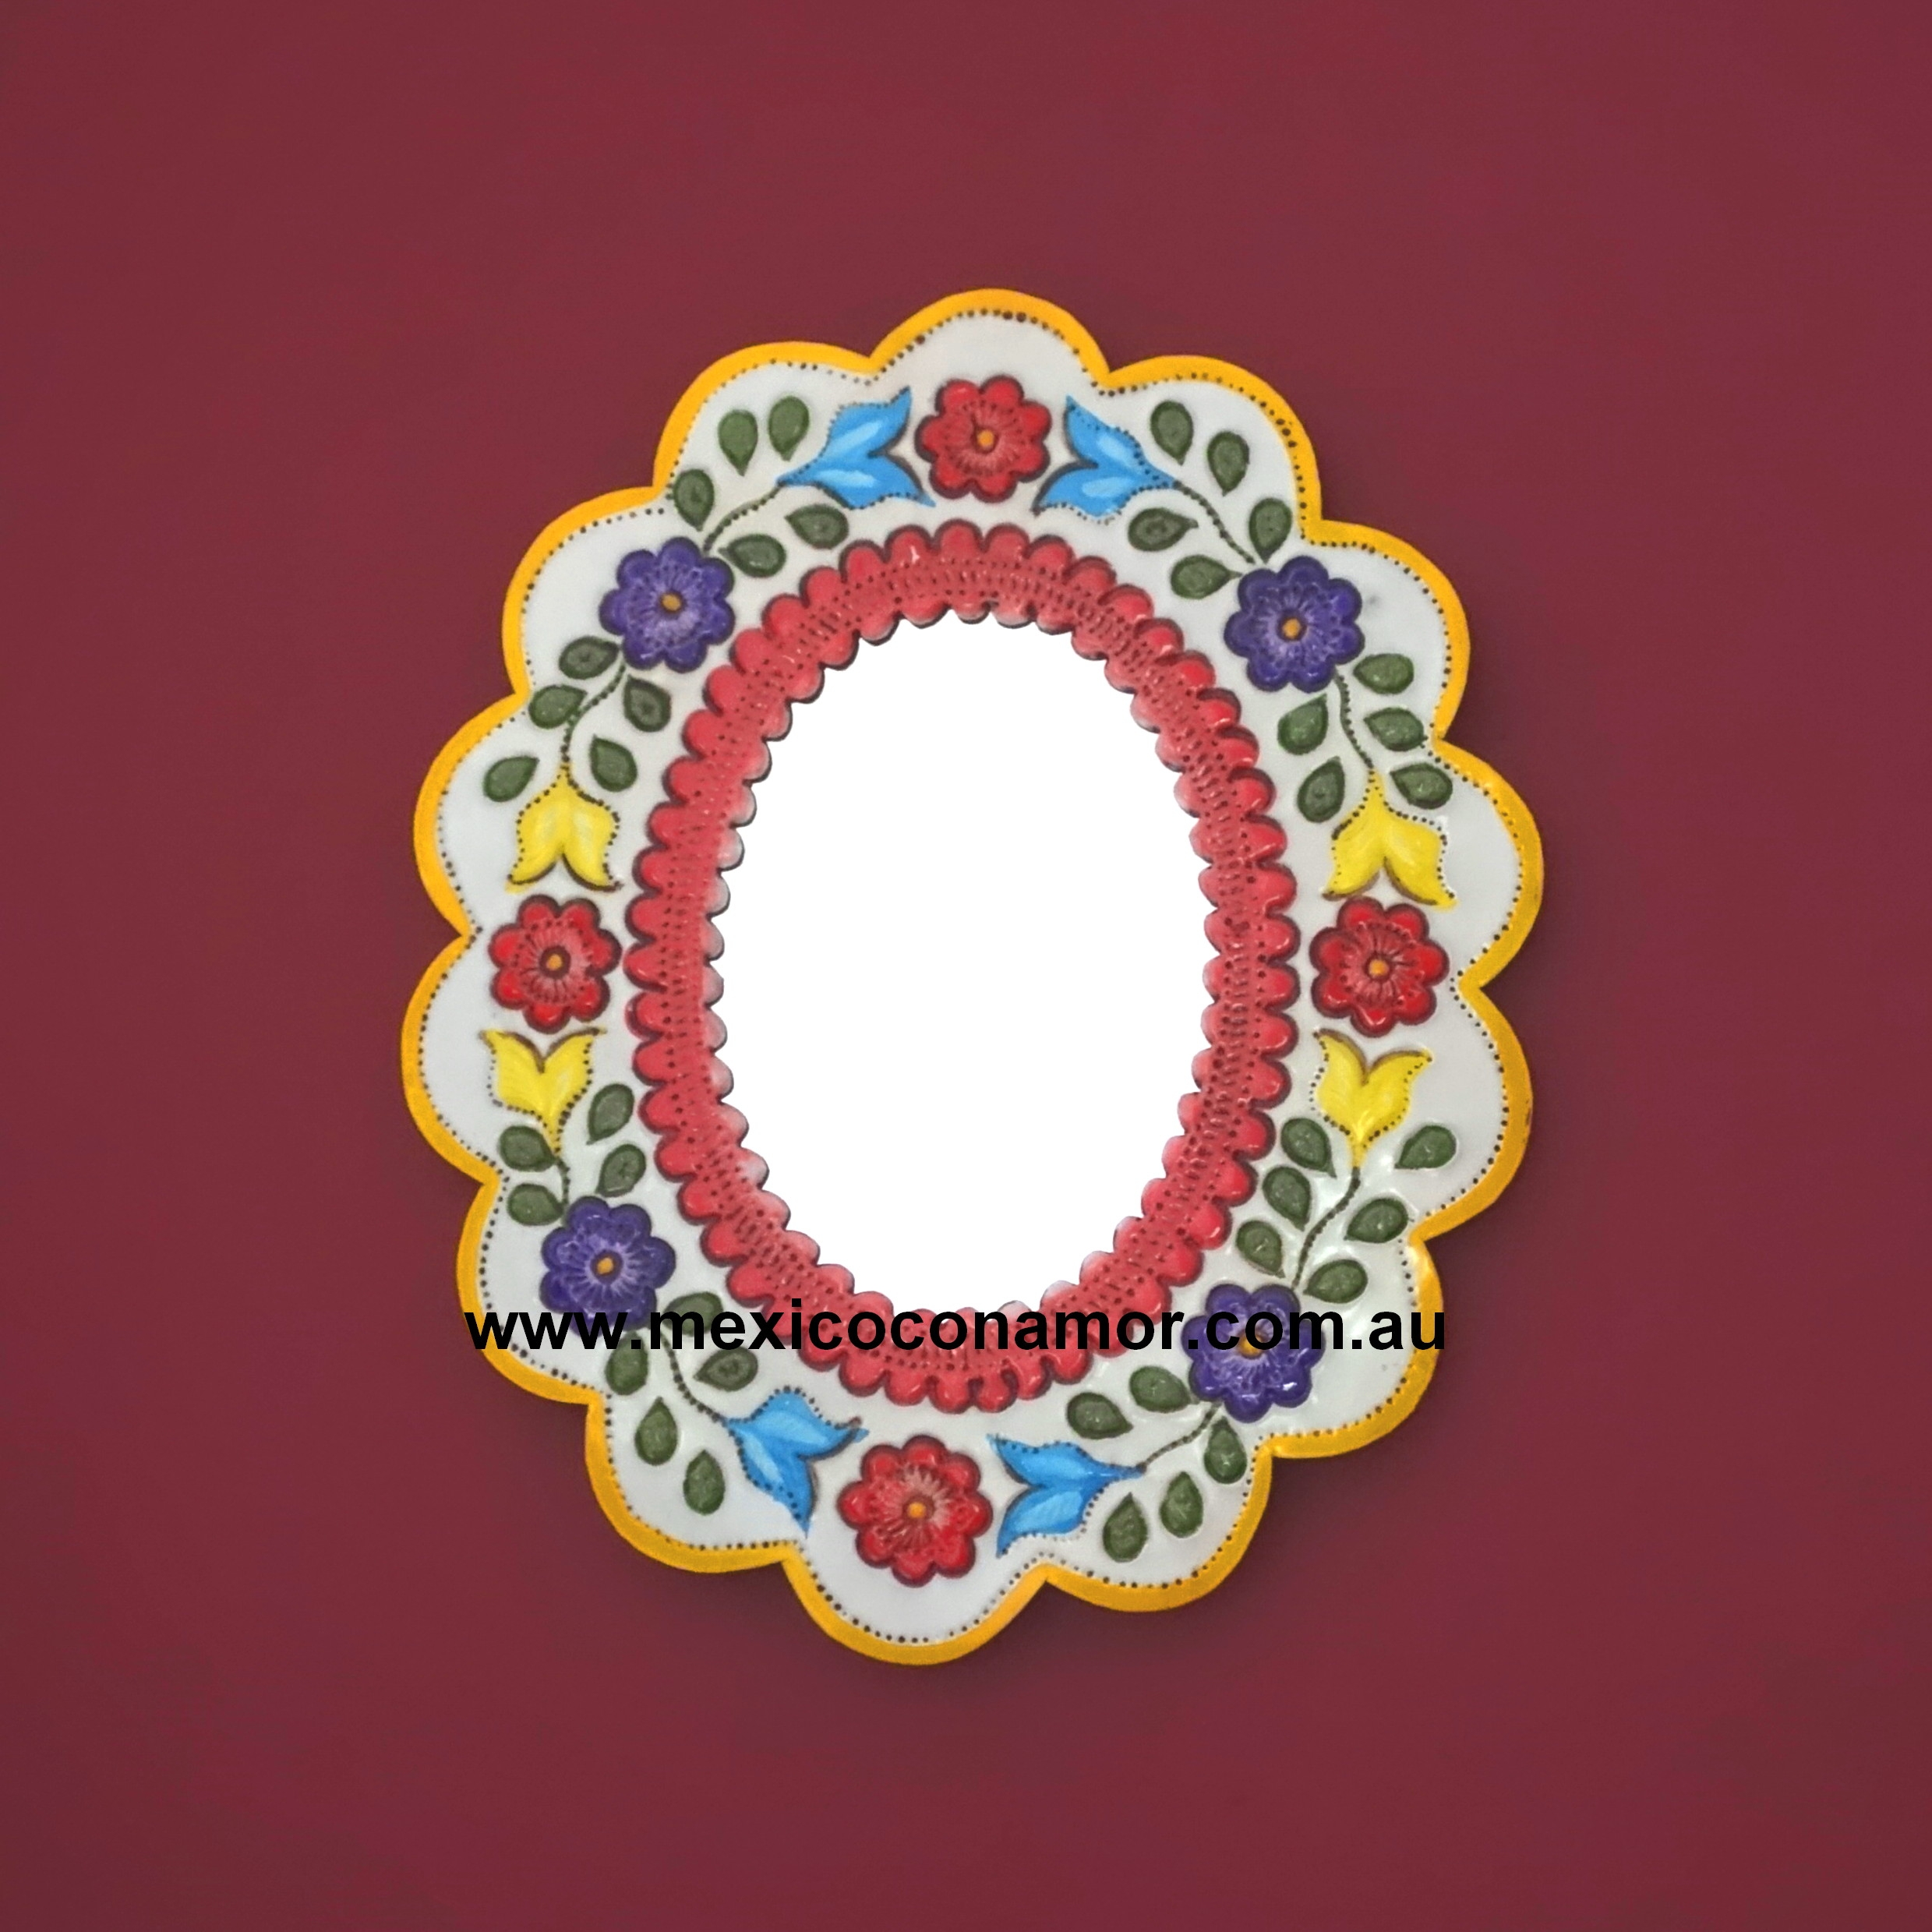 Oval Pressed Tin Mirror Coloured Mexico Con Amor For Pressed Tin Mirrors (View 13 of 15)